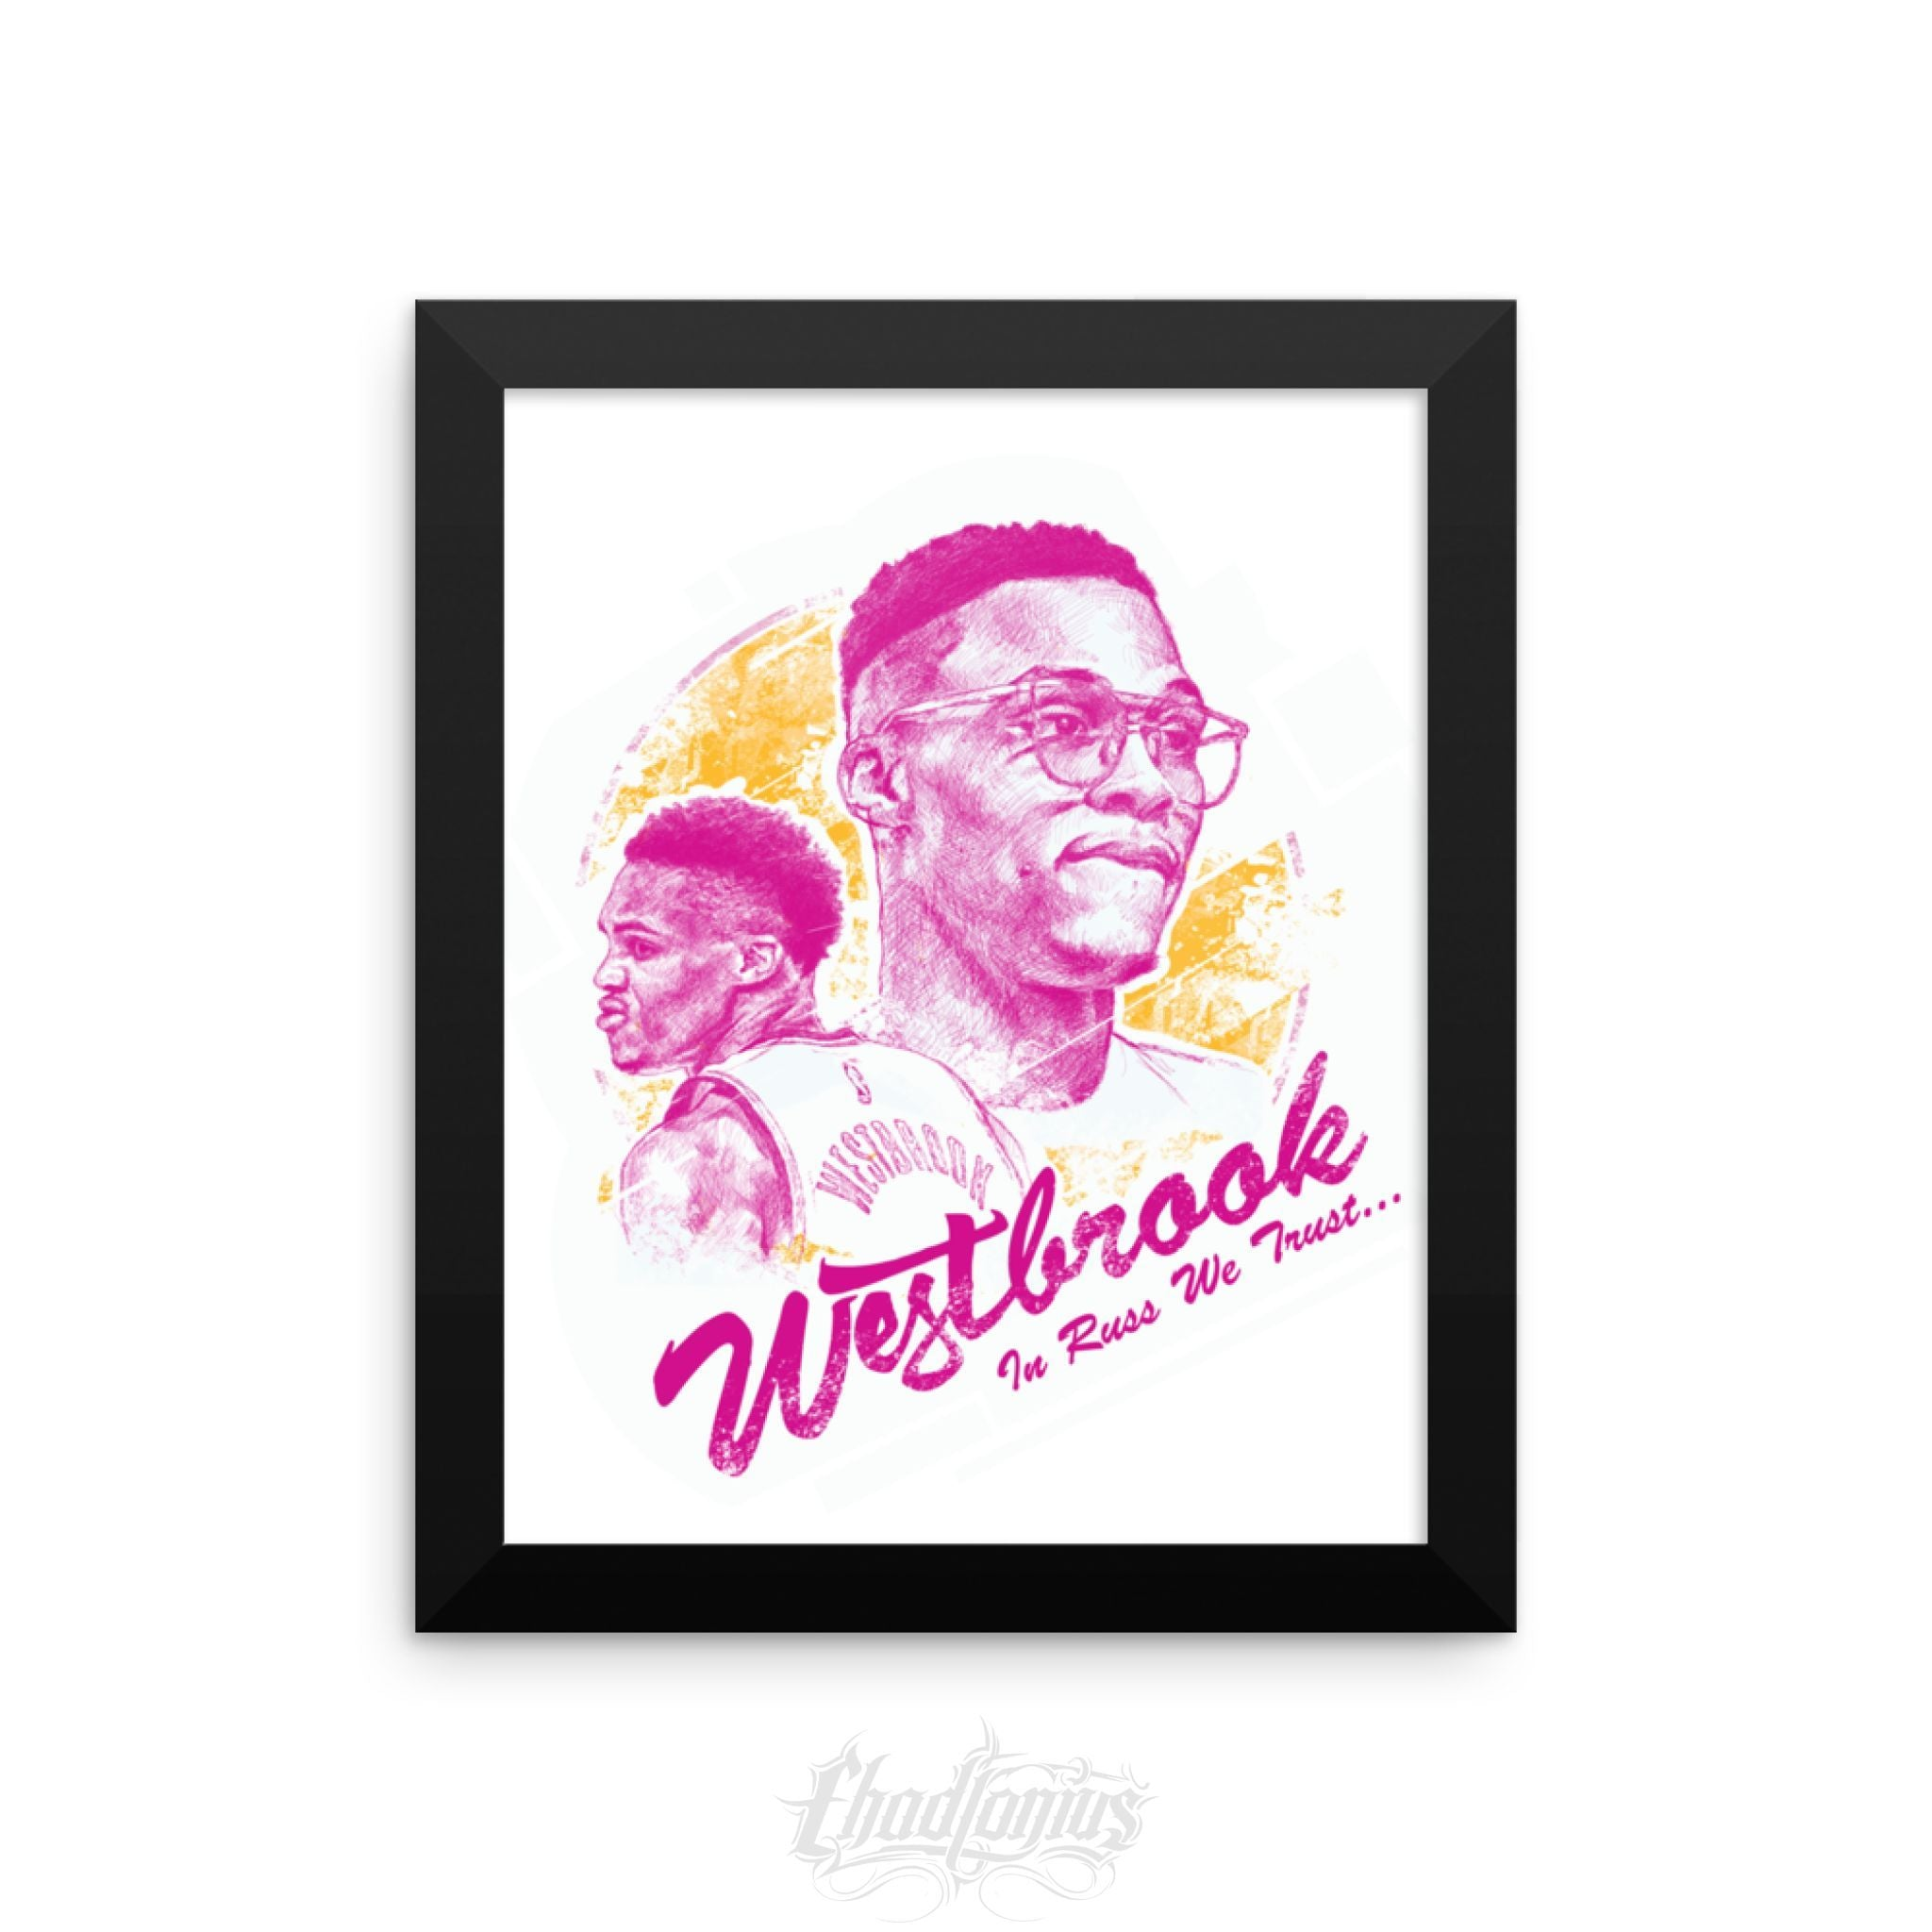 IN RUSS WE TRUST - Framed photo paper poster